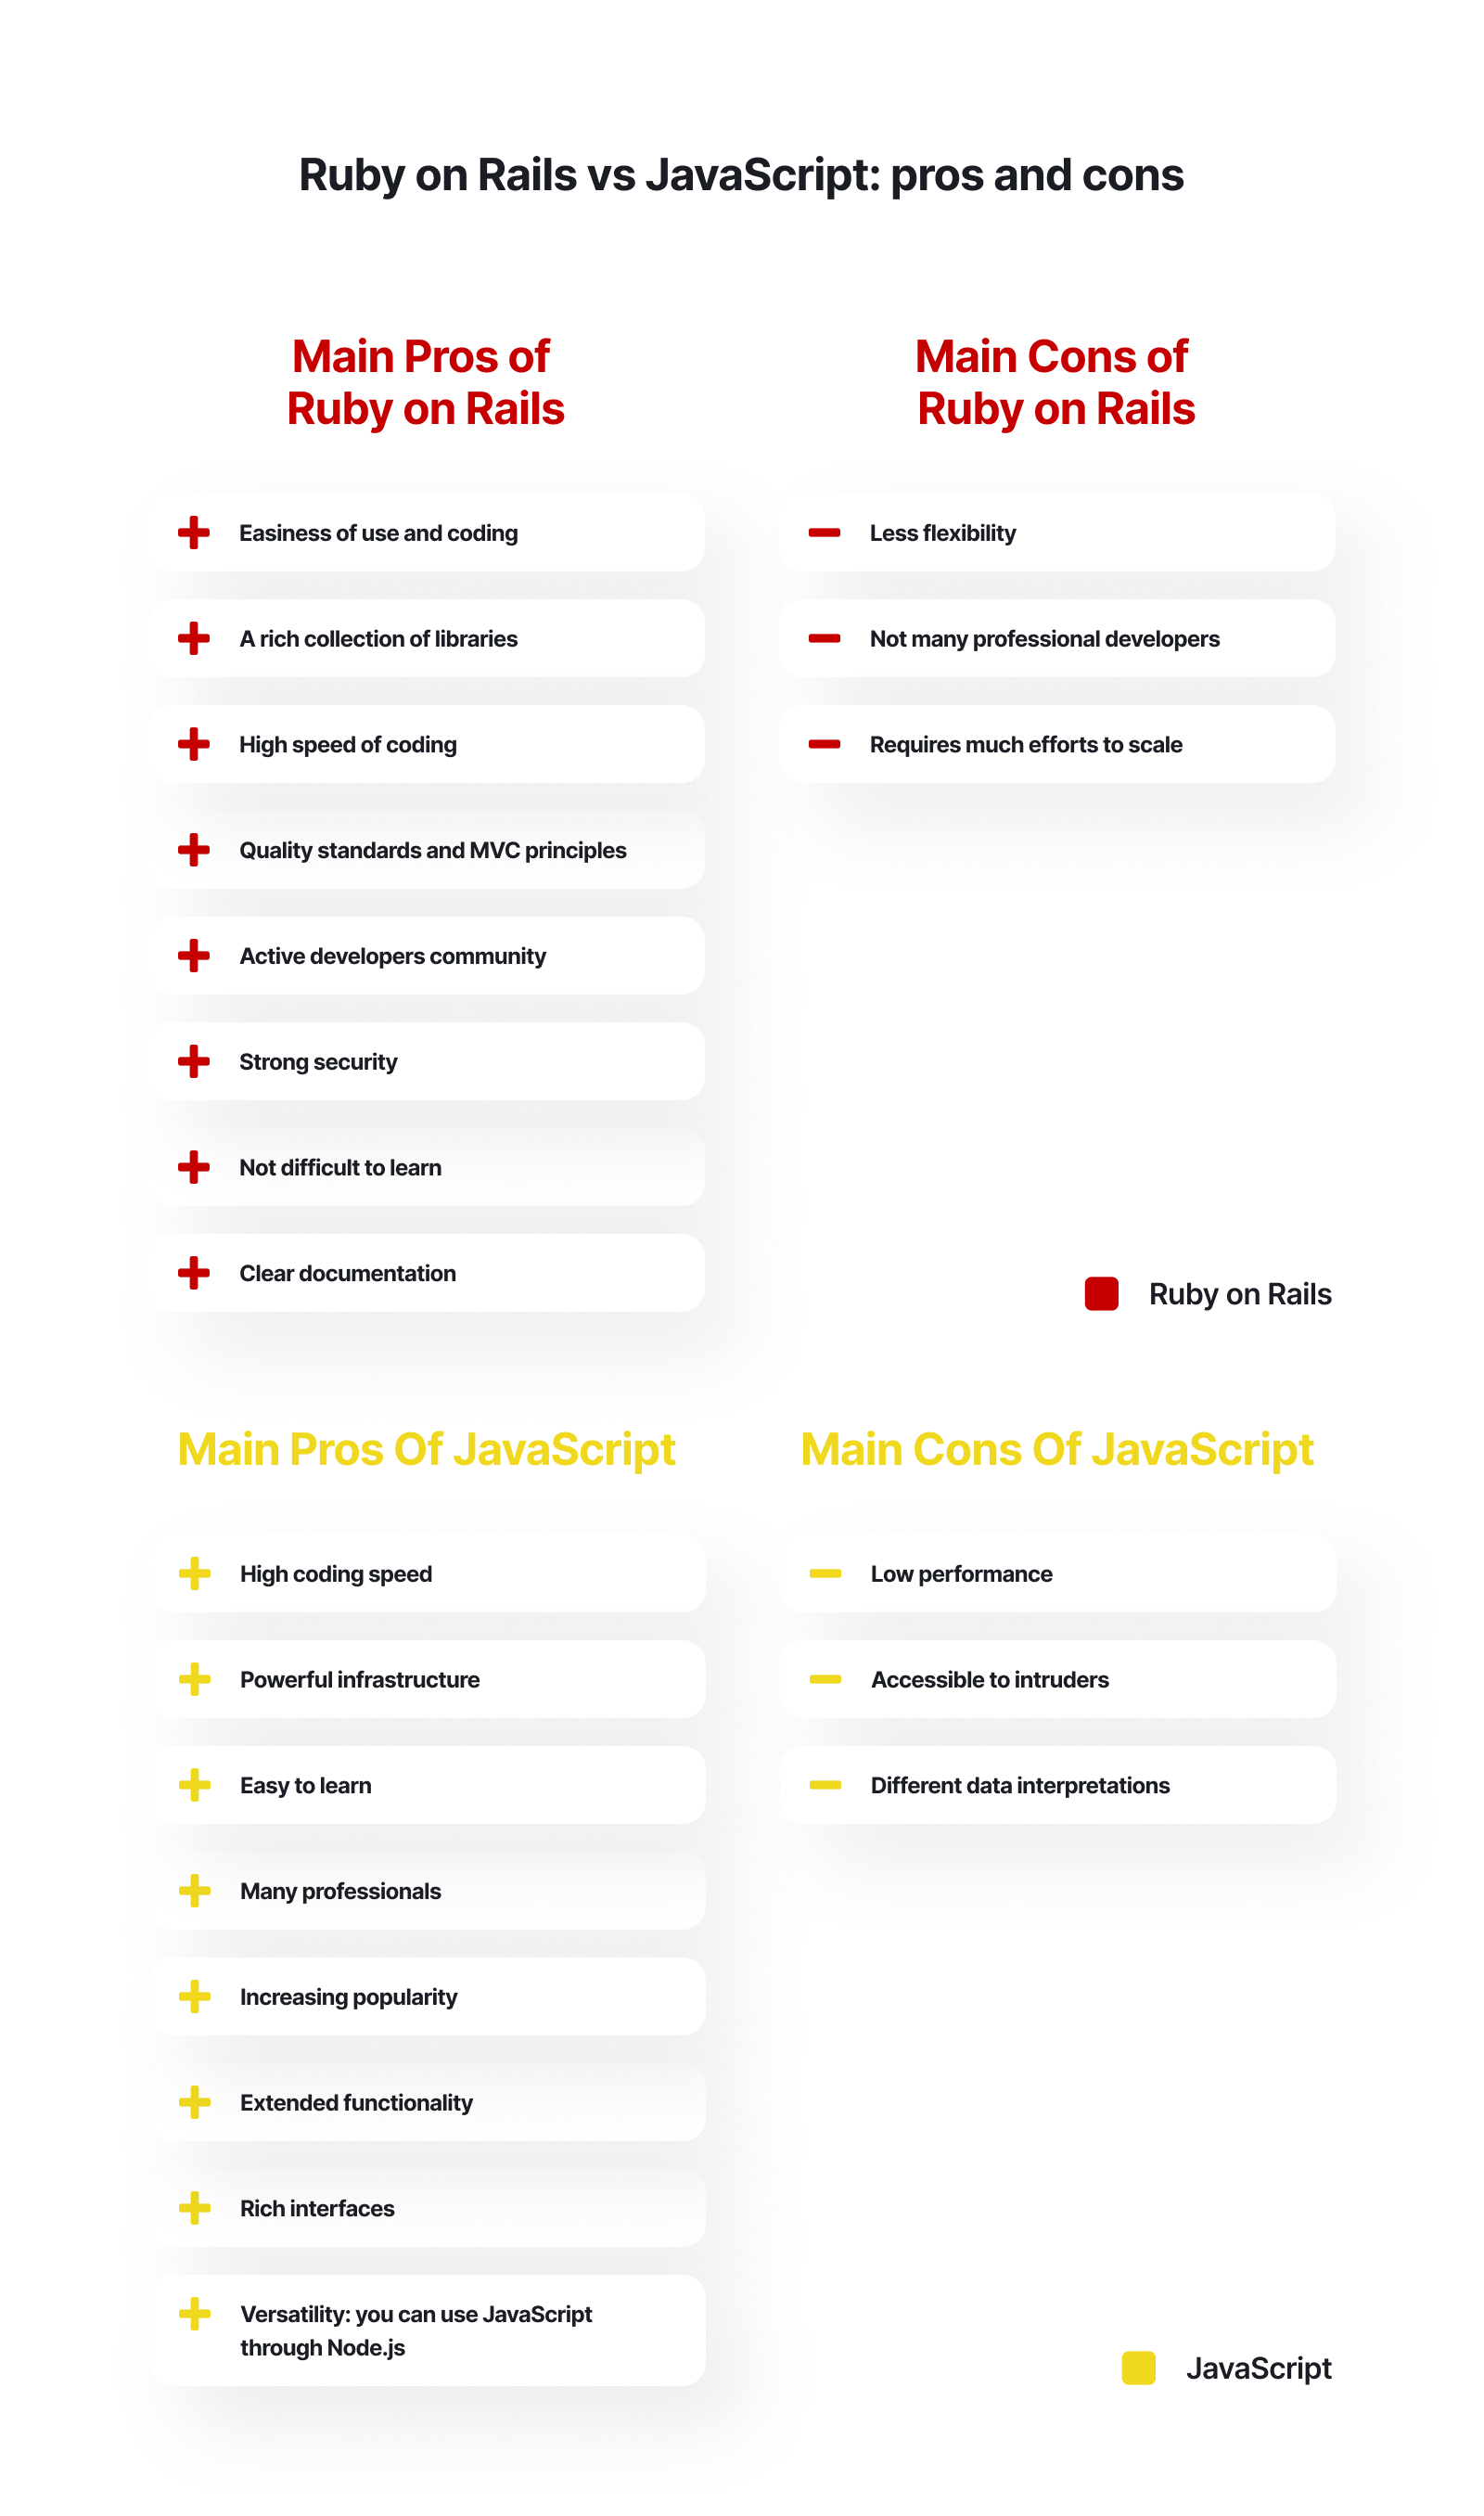 pros and cons of Ruby on Rails and JavaScript